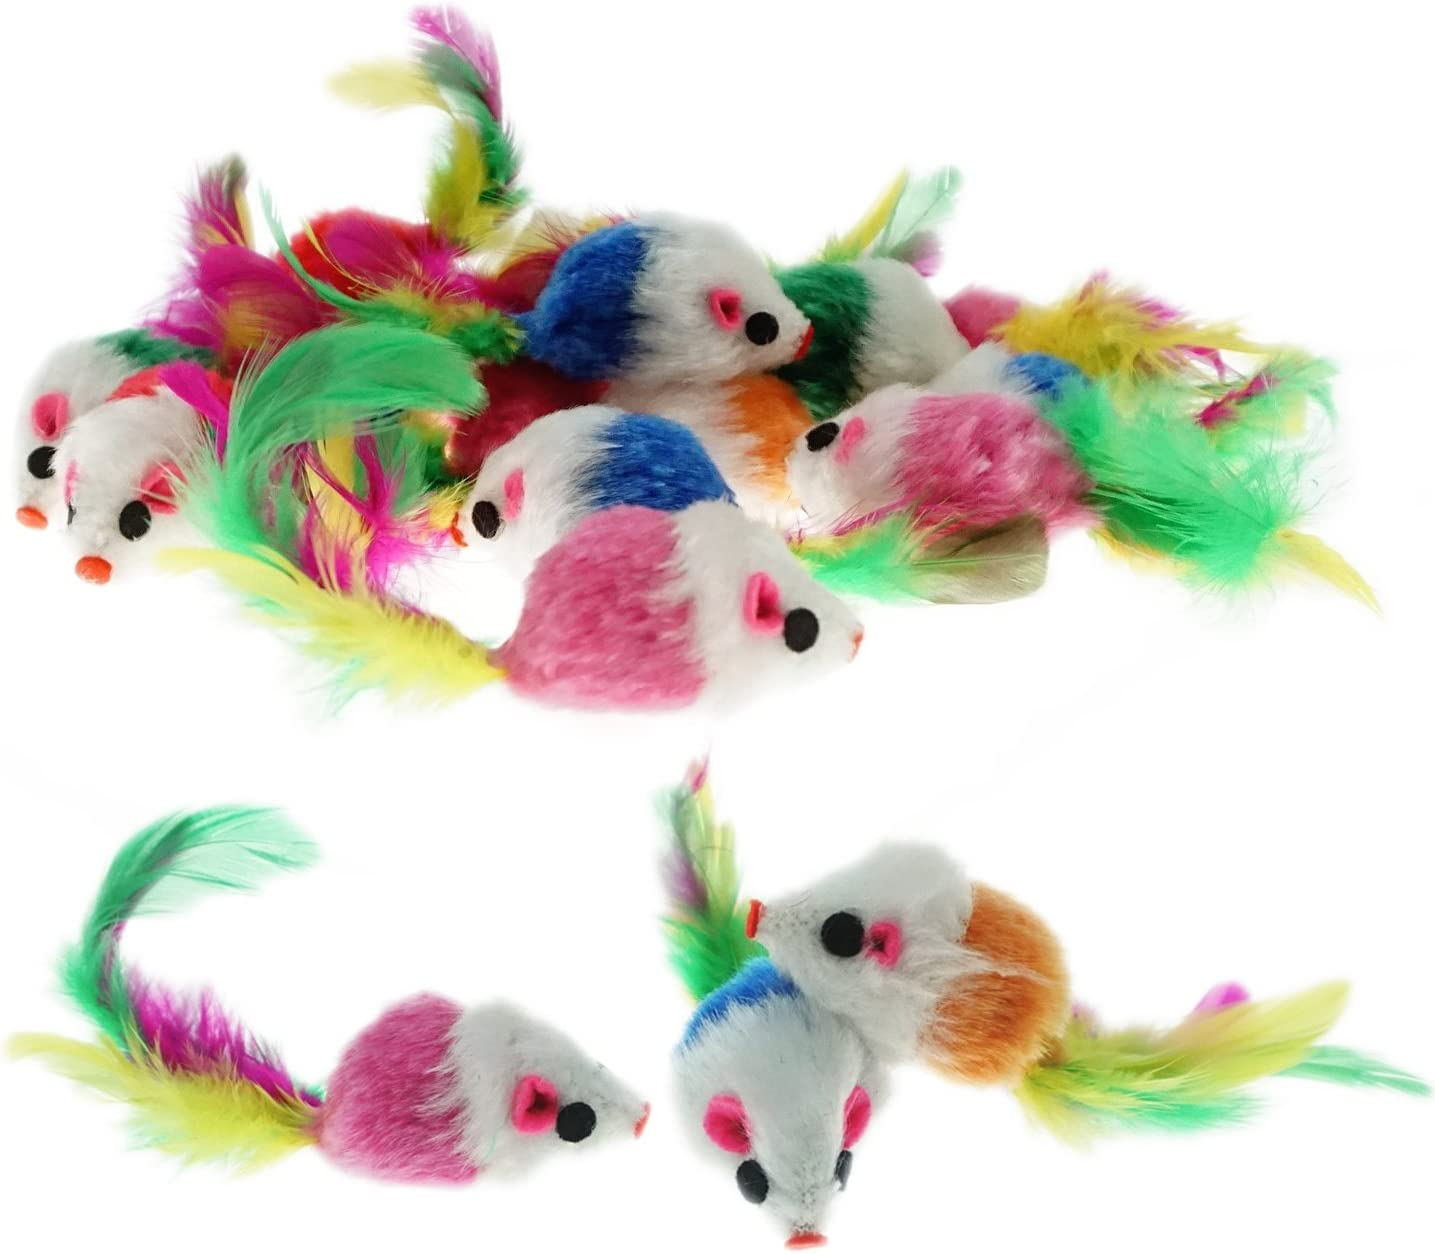 Keklle Furry Mice Toys of Feather Tails, Mouse Toys for Cats, Funny Small Pet Toys, 20 Counting